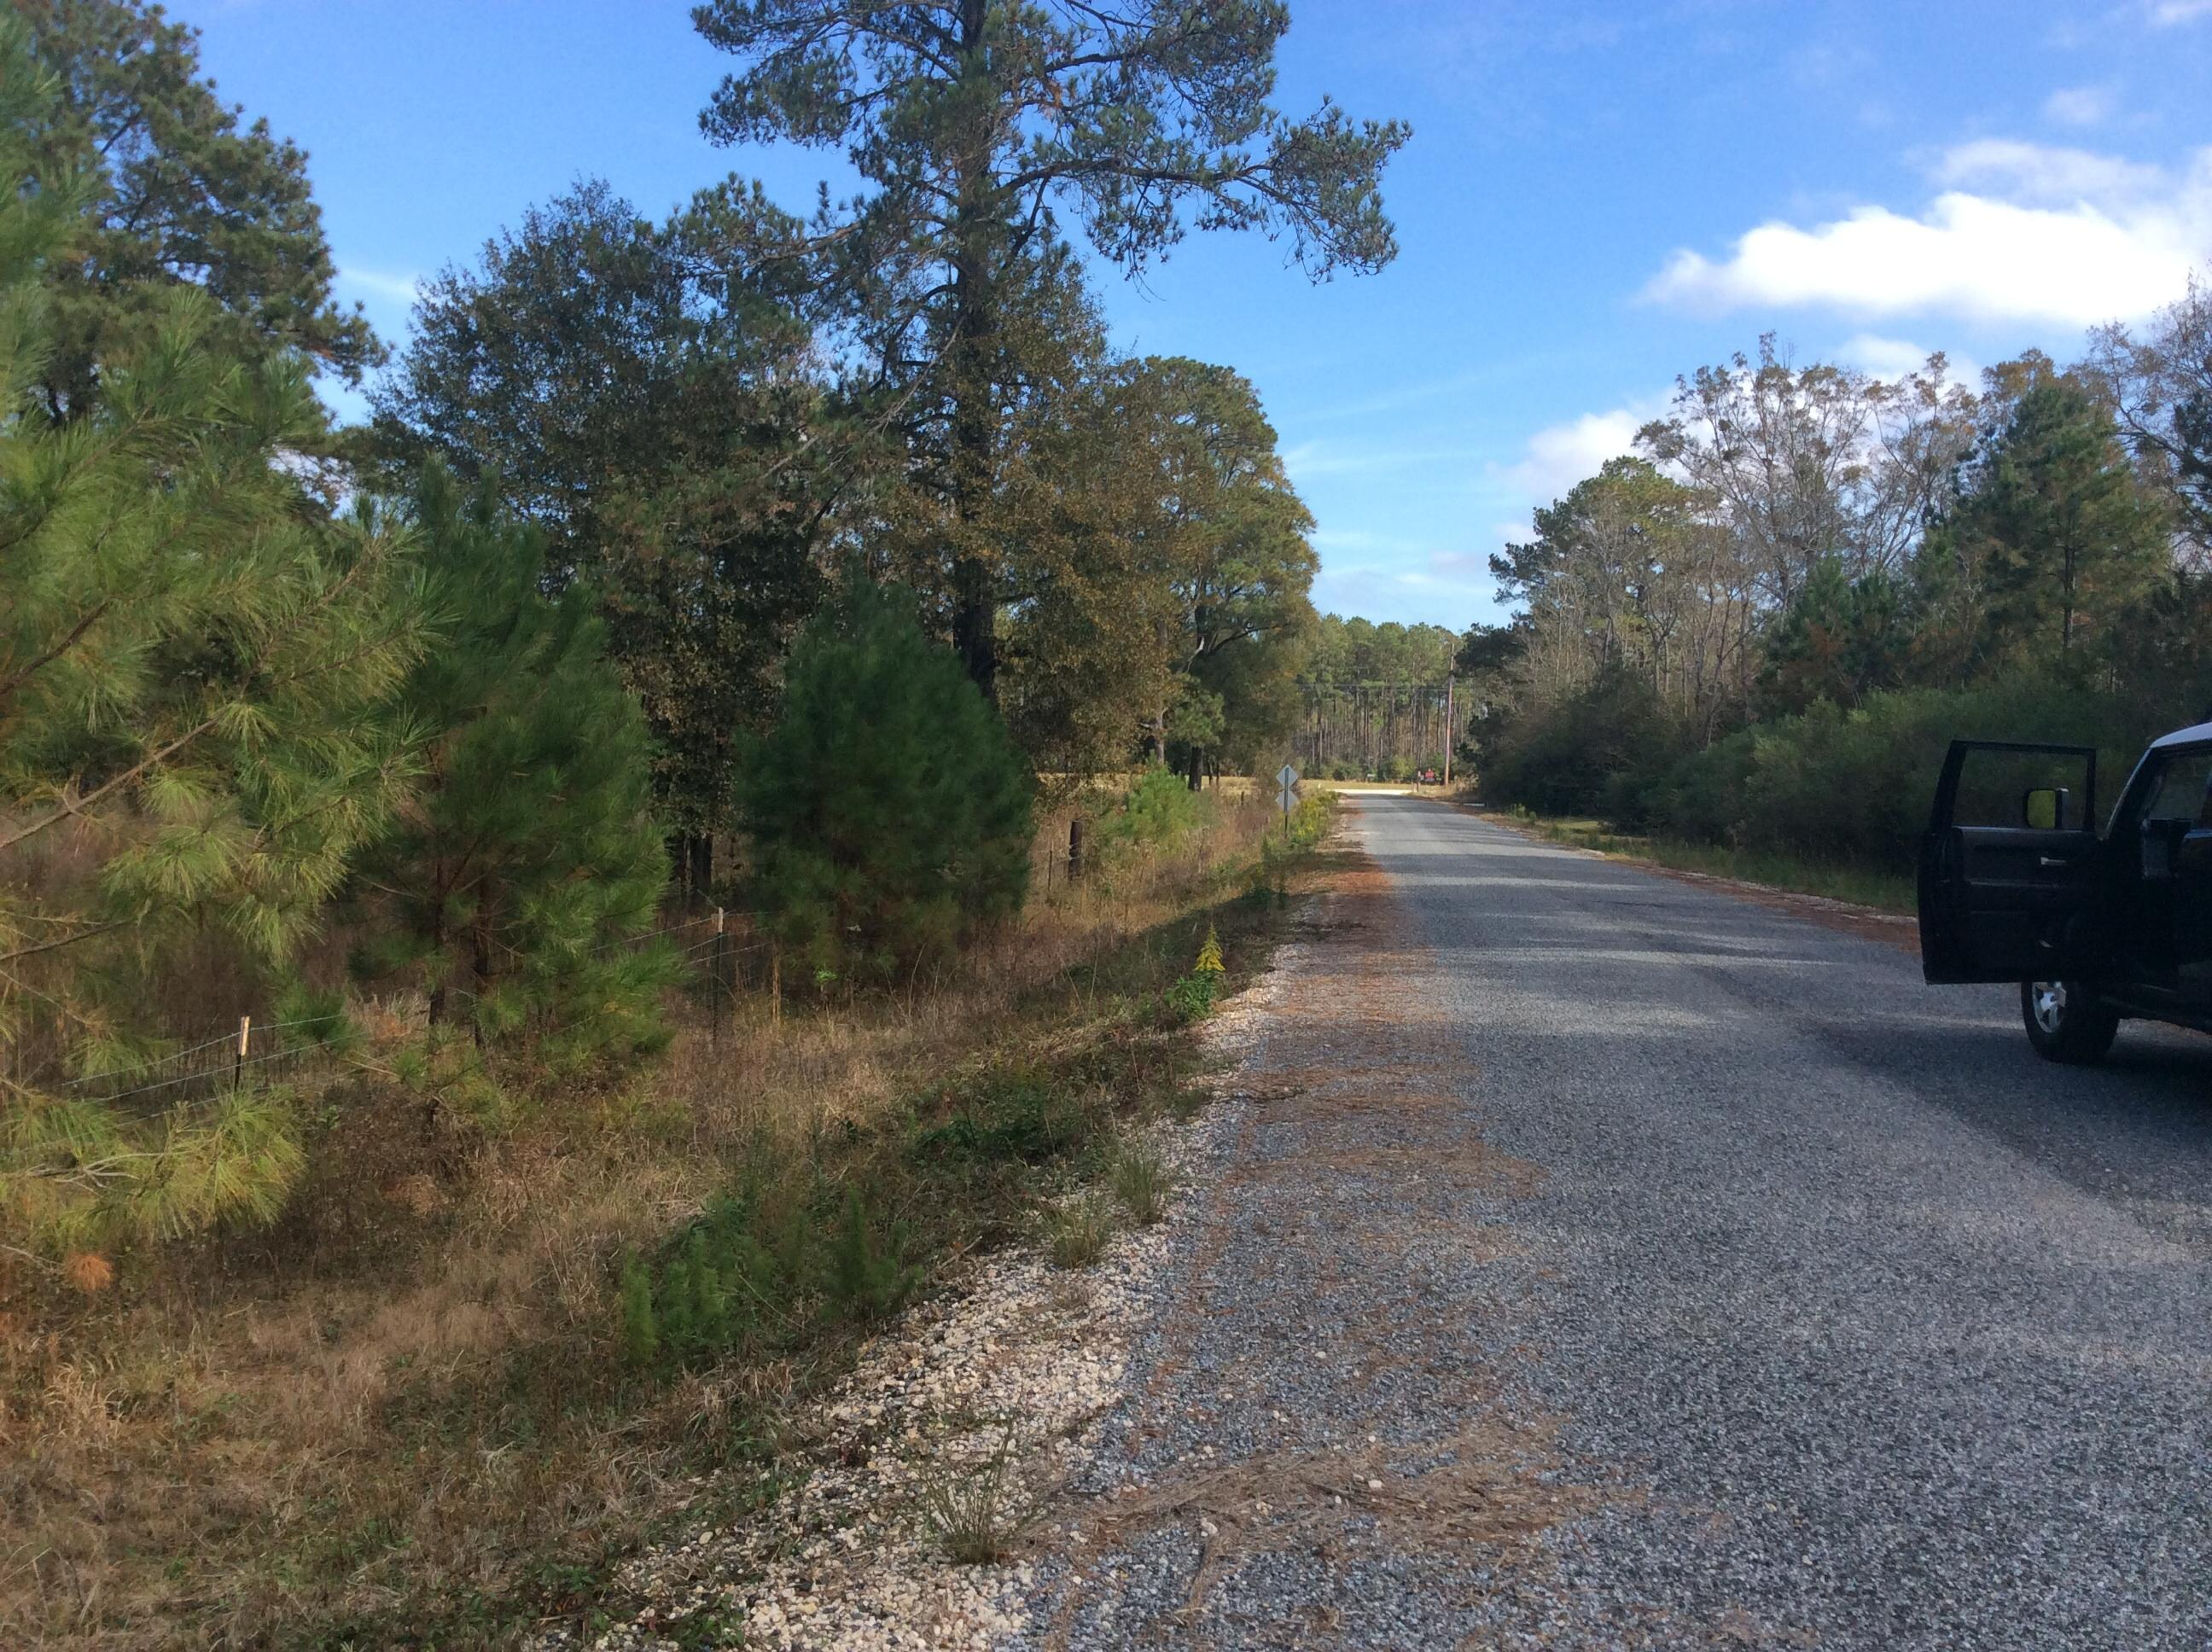 Longville land for sale,  US-171, Longville LA - $65,000